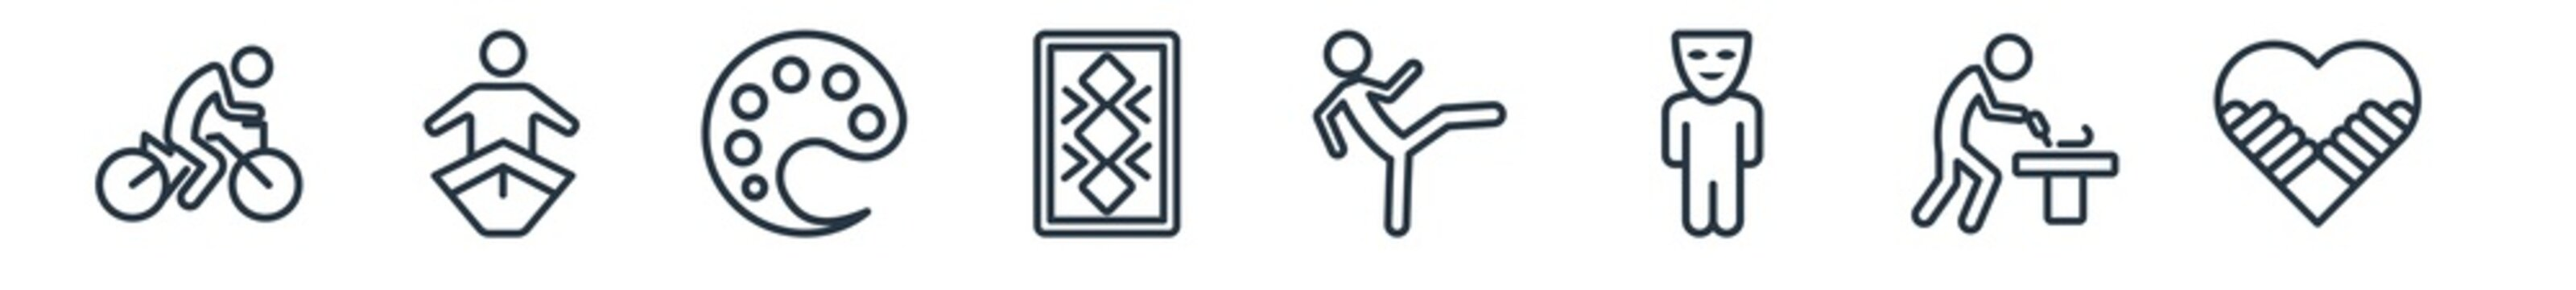 linear set of activity and hobbies outline icons. line vector icons such as biking, boat race, coloring, quilt, martial art, couple huging vector illustration.